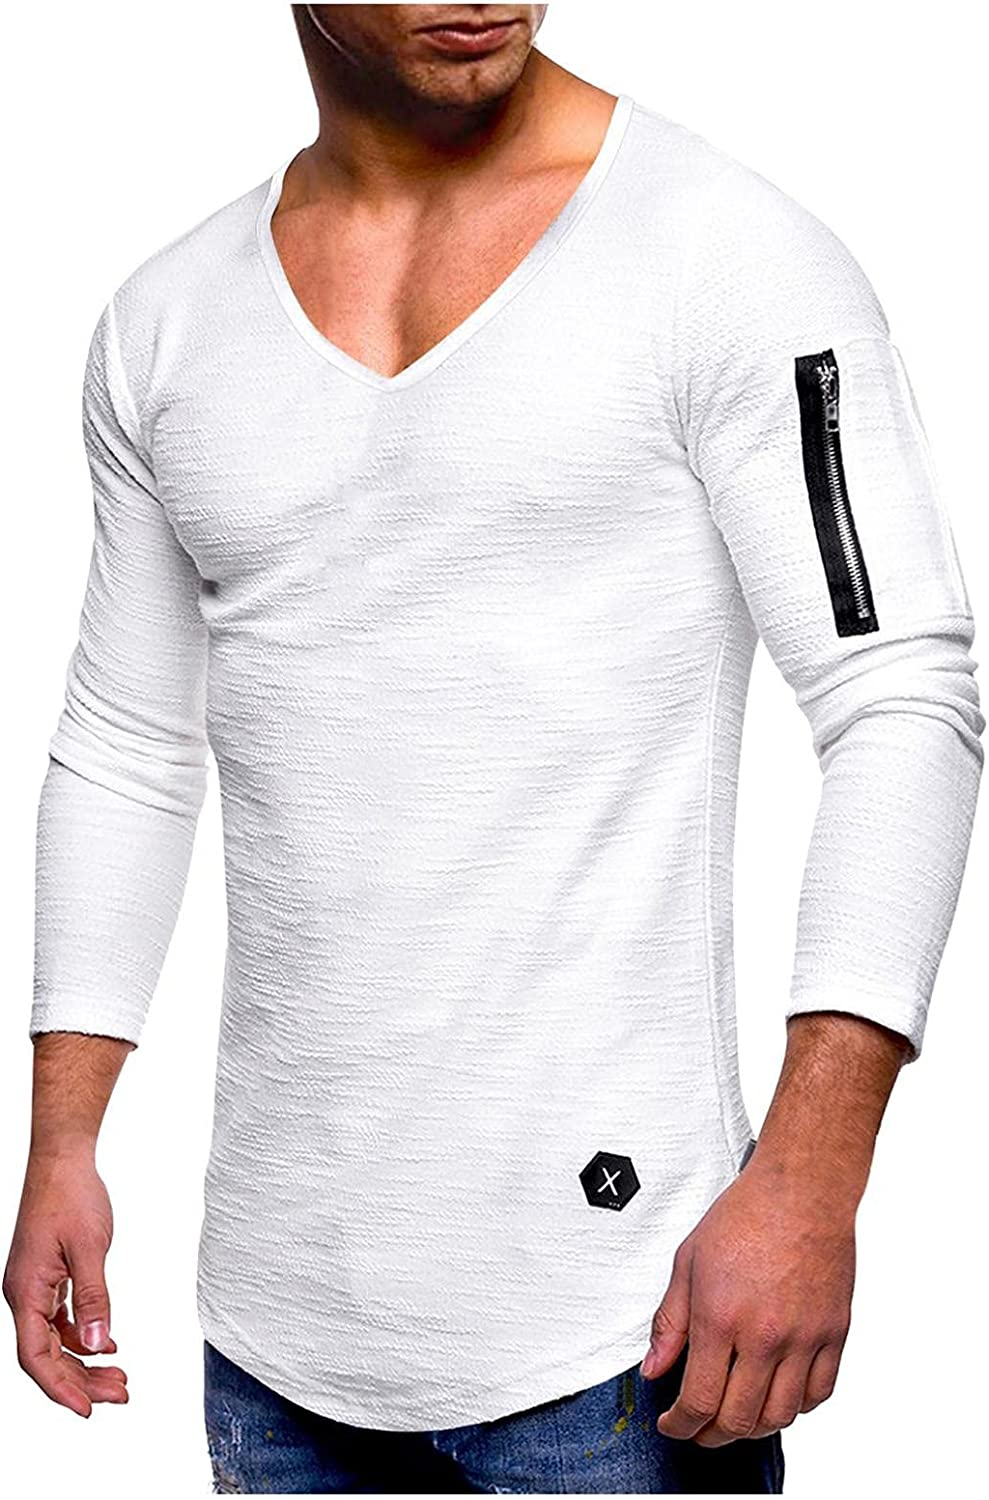 Long Sleeve Tee Shirts for Men Casual Muscle T-Shirts V-neck Athletic Sweatshirt Zipper Workout Gym Pullover Tops